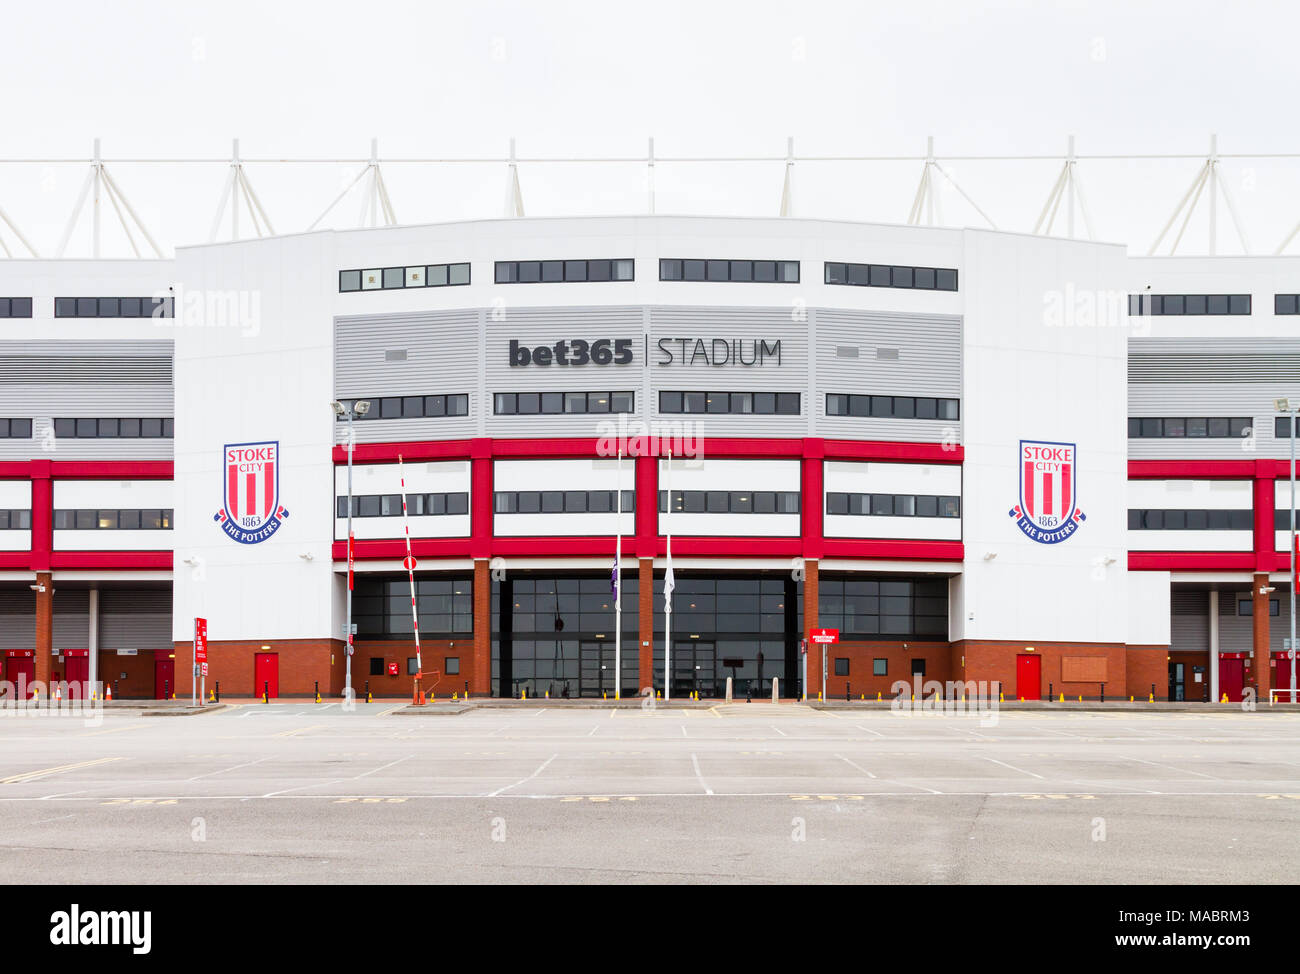 The Bet 365  Stadium (formerly the Britannia Stadium), home of Stoke City Football Club in Stoke-On-Trent, England. - Stock Image